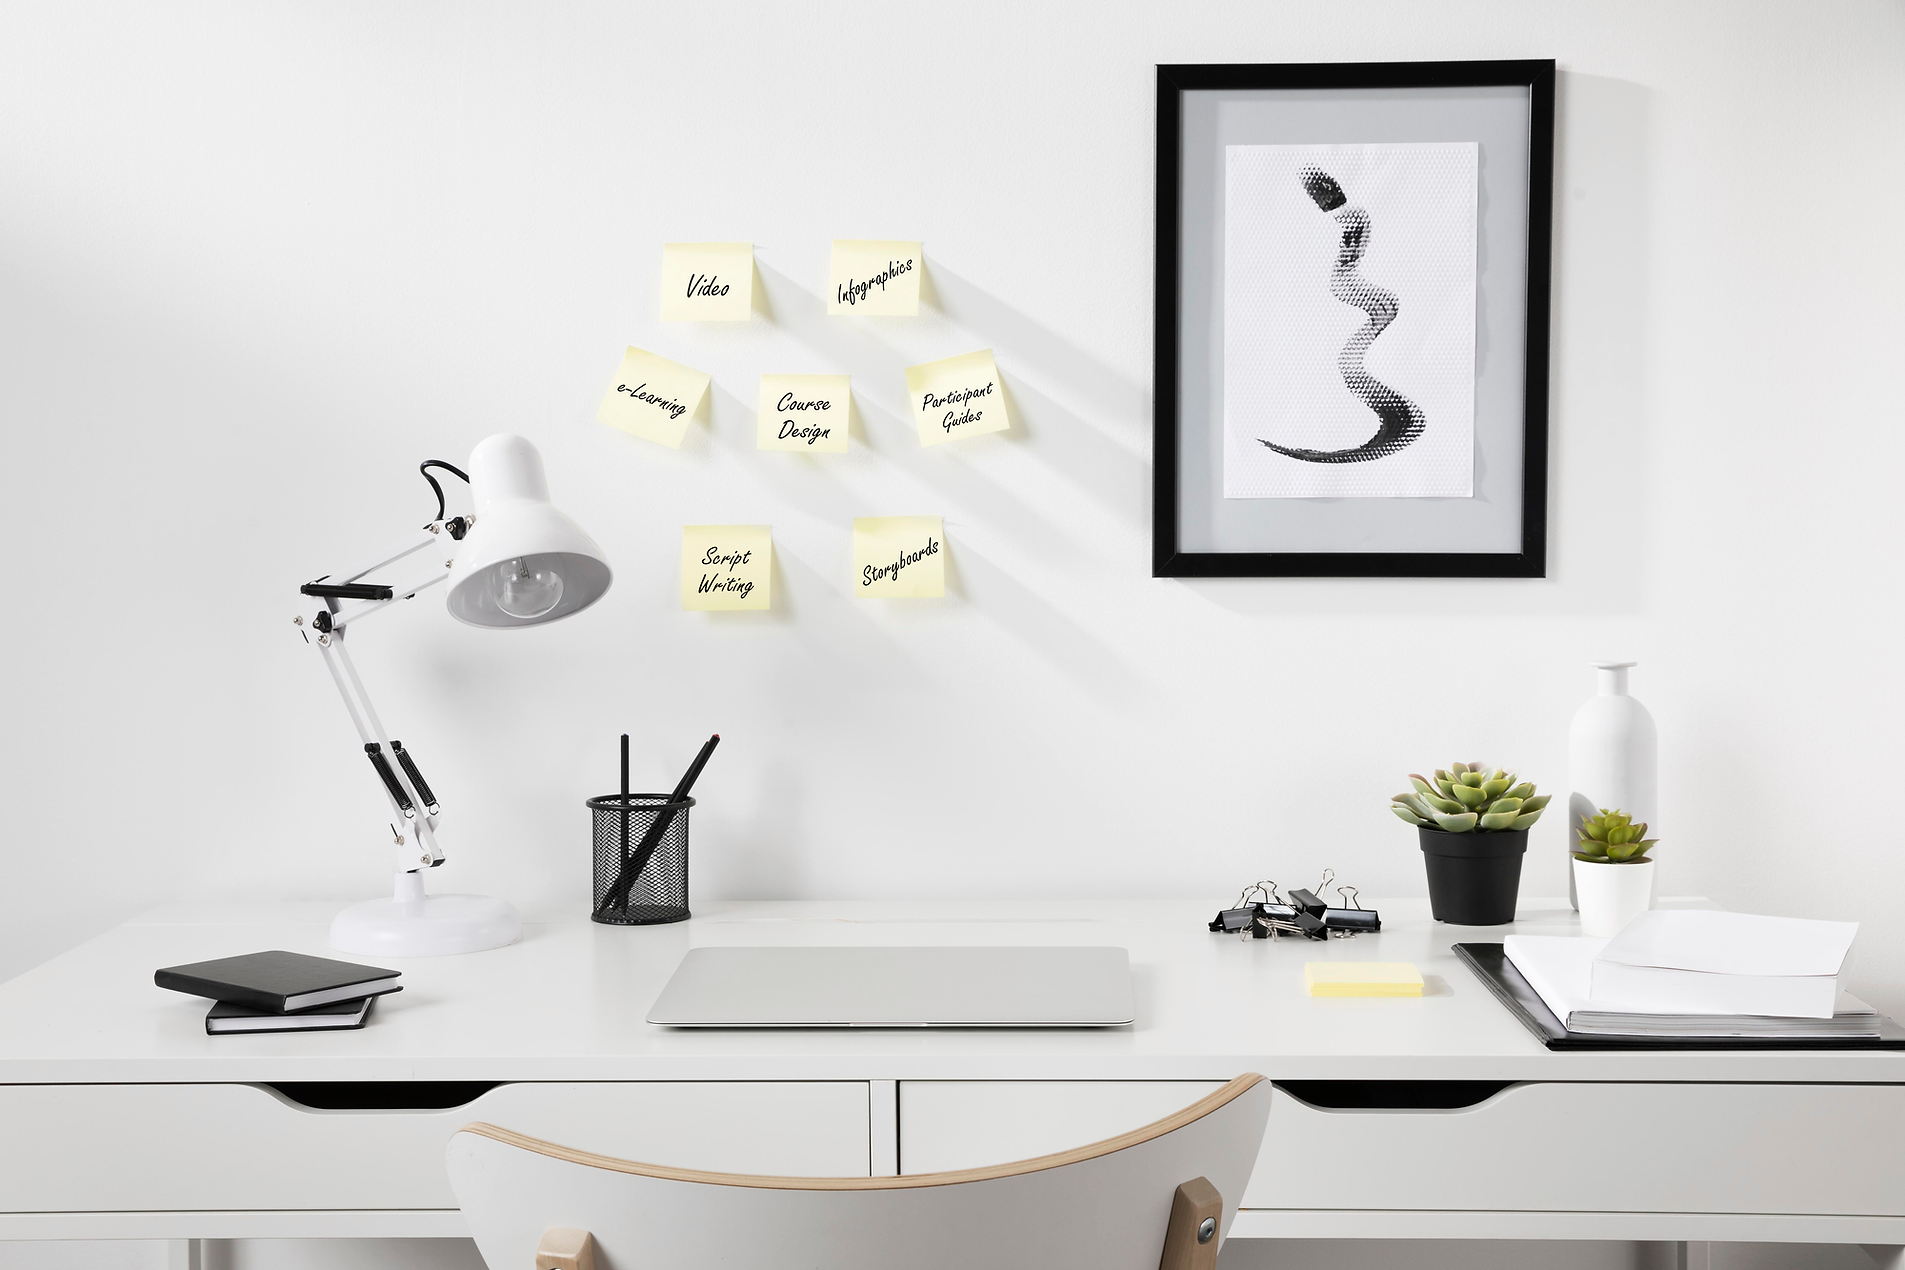 Neat organized workspace with post its d